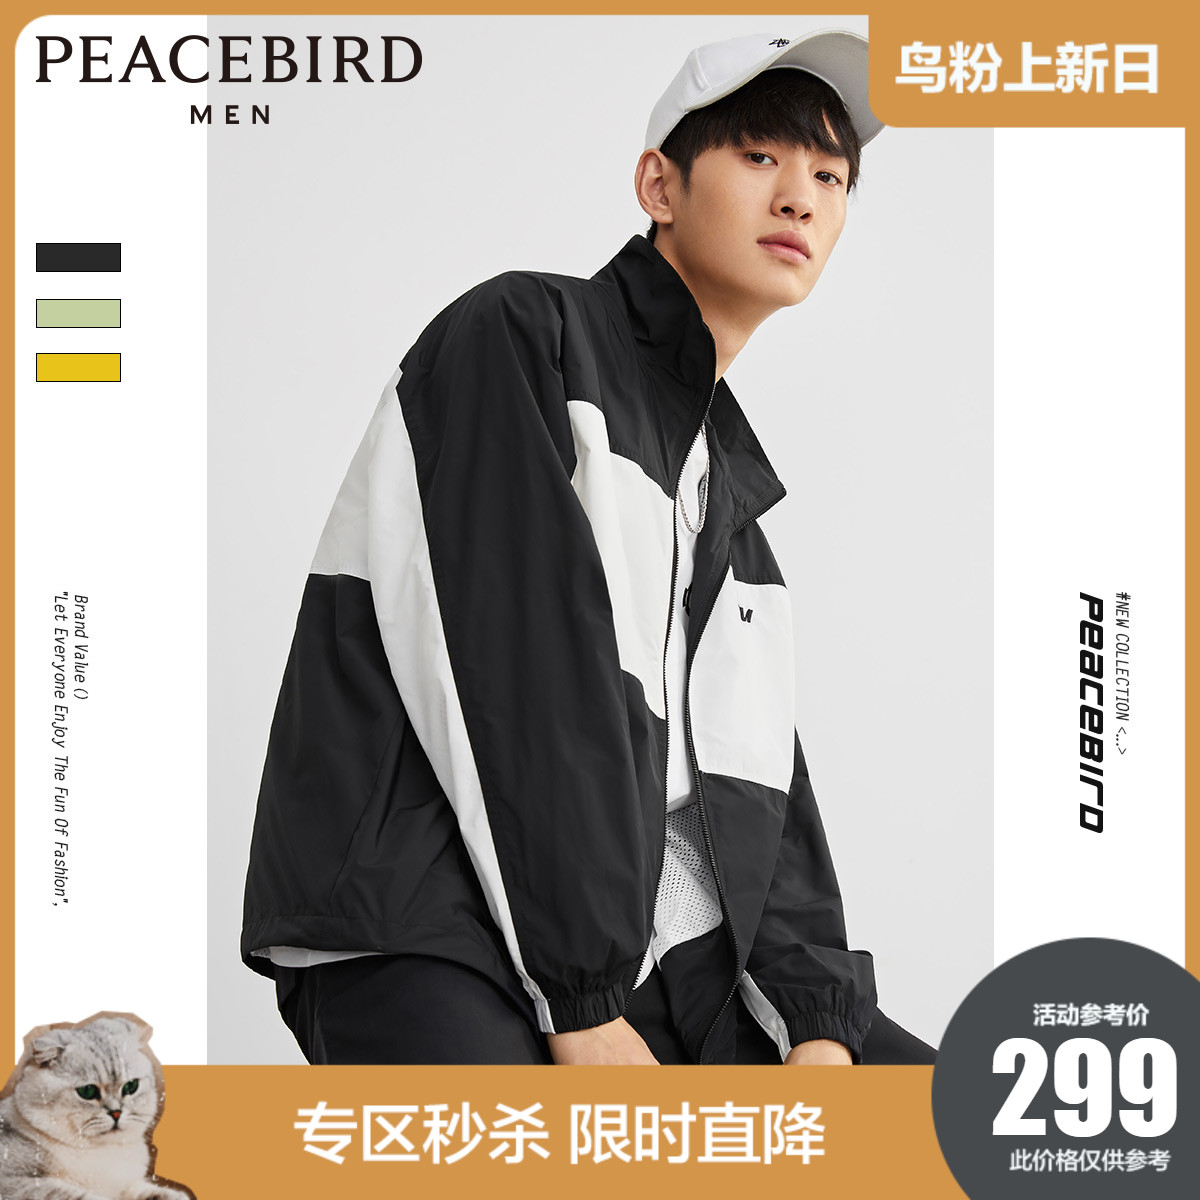 Taiping bird men's thin jacket men's training jacket three color Mock Neck jacket ins sports jacket trend